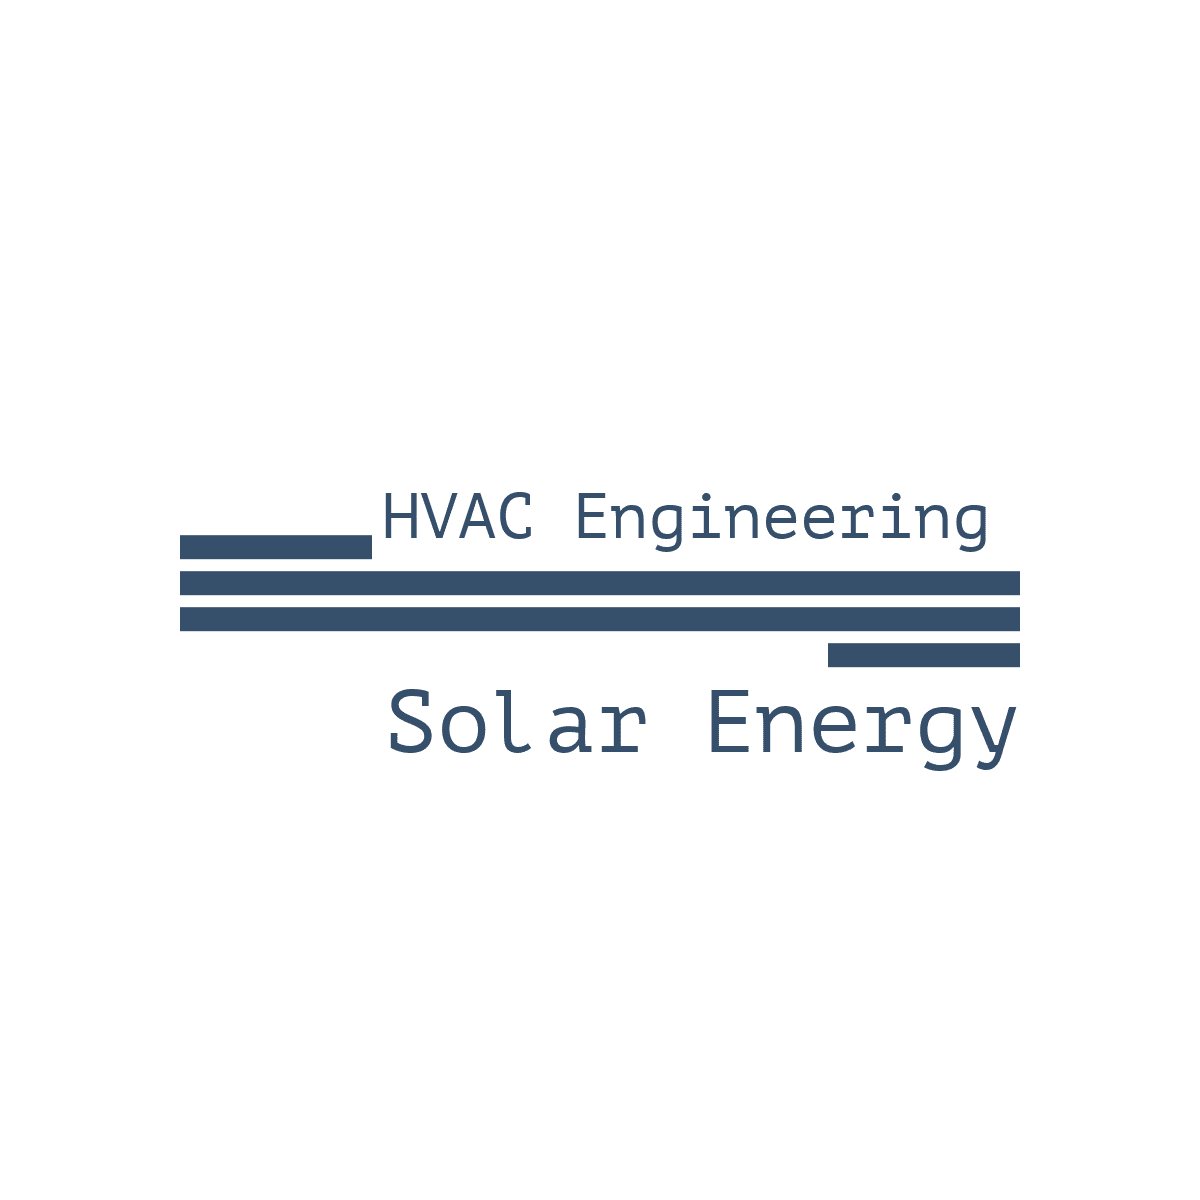 HVAC/R and Solar energy engineering calculations - HVAC/R